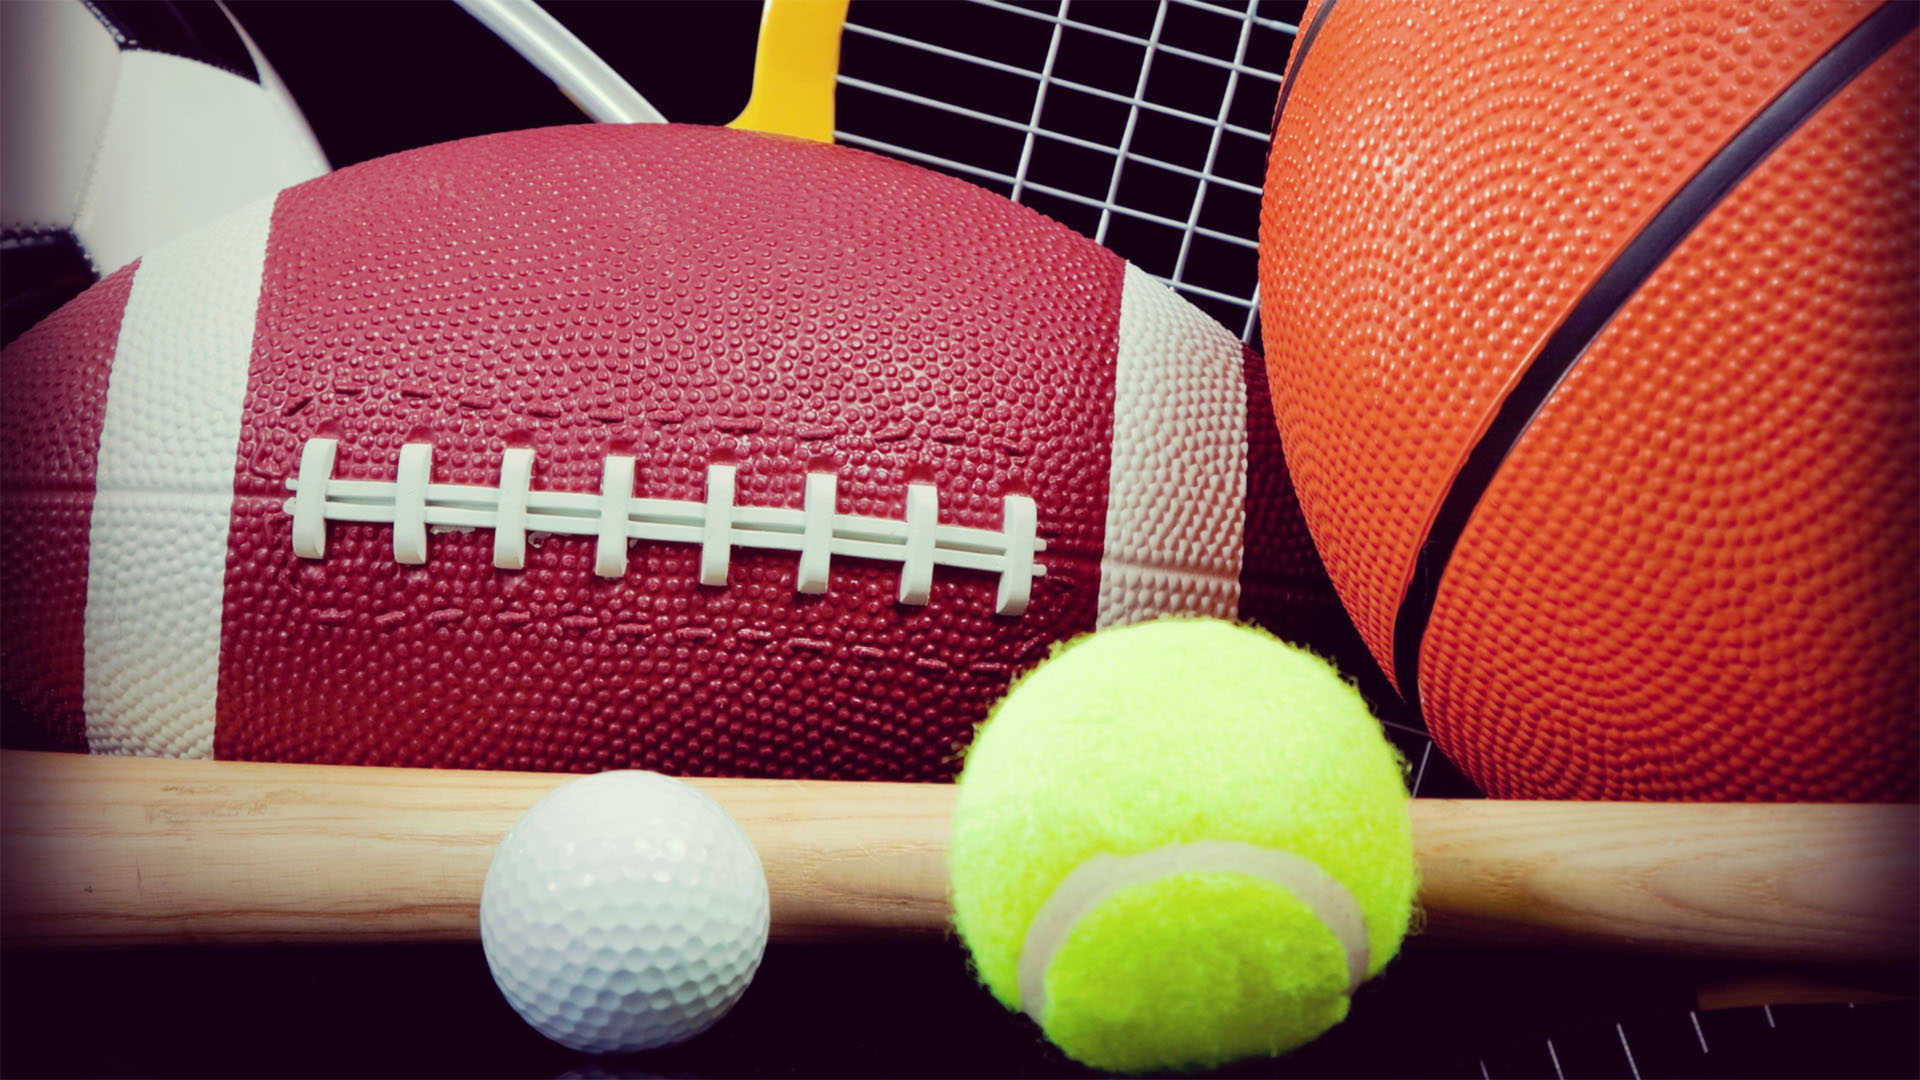 All Sport Wallpaper 1920x1080: [69+] Sports Background Images On WallpaperSafari